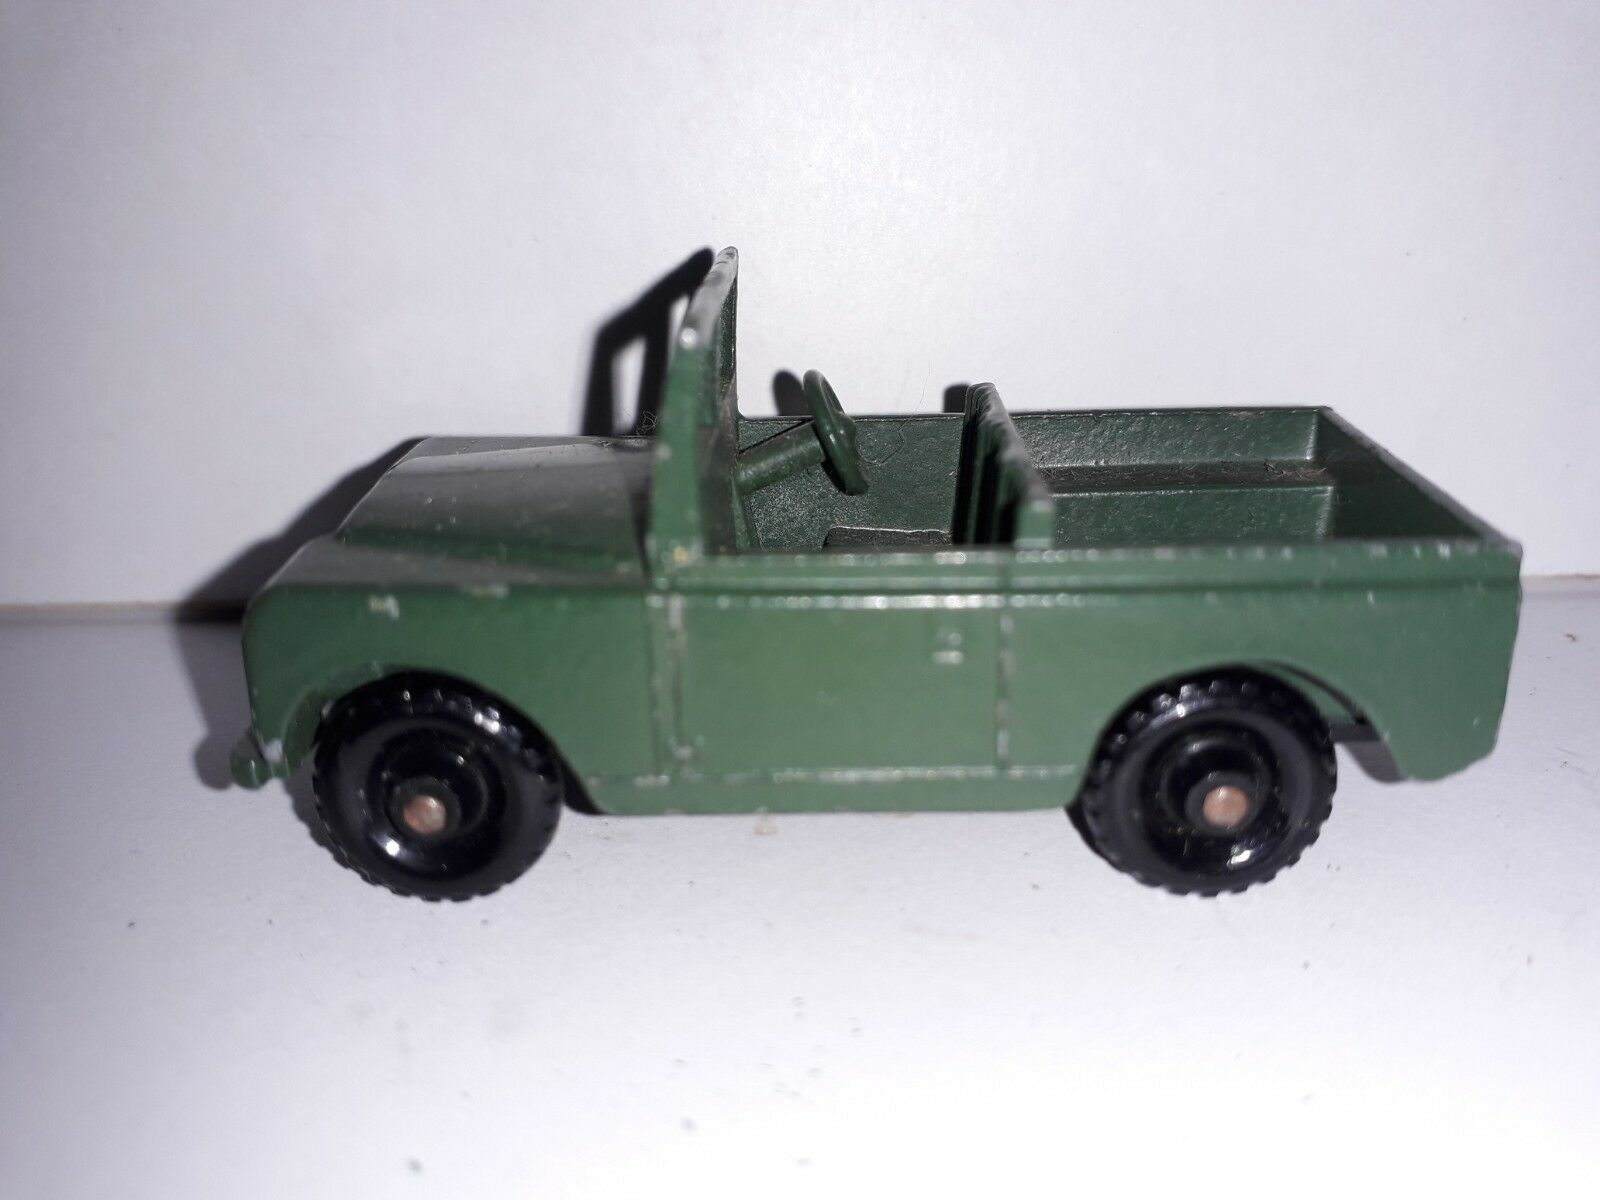 Unboxed Lesney Toys Land-Rover Series II No 12 Military Grün Army